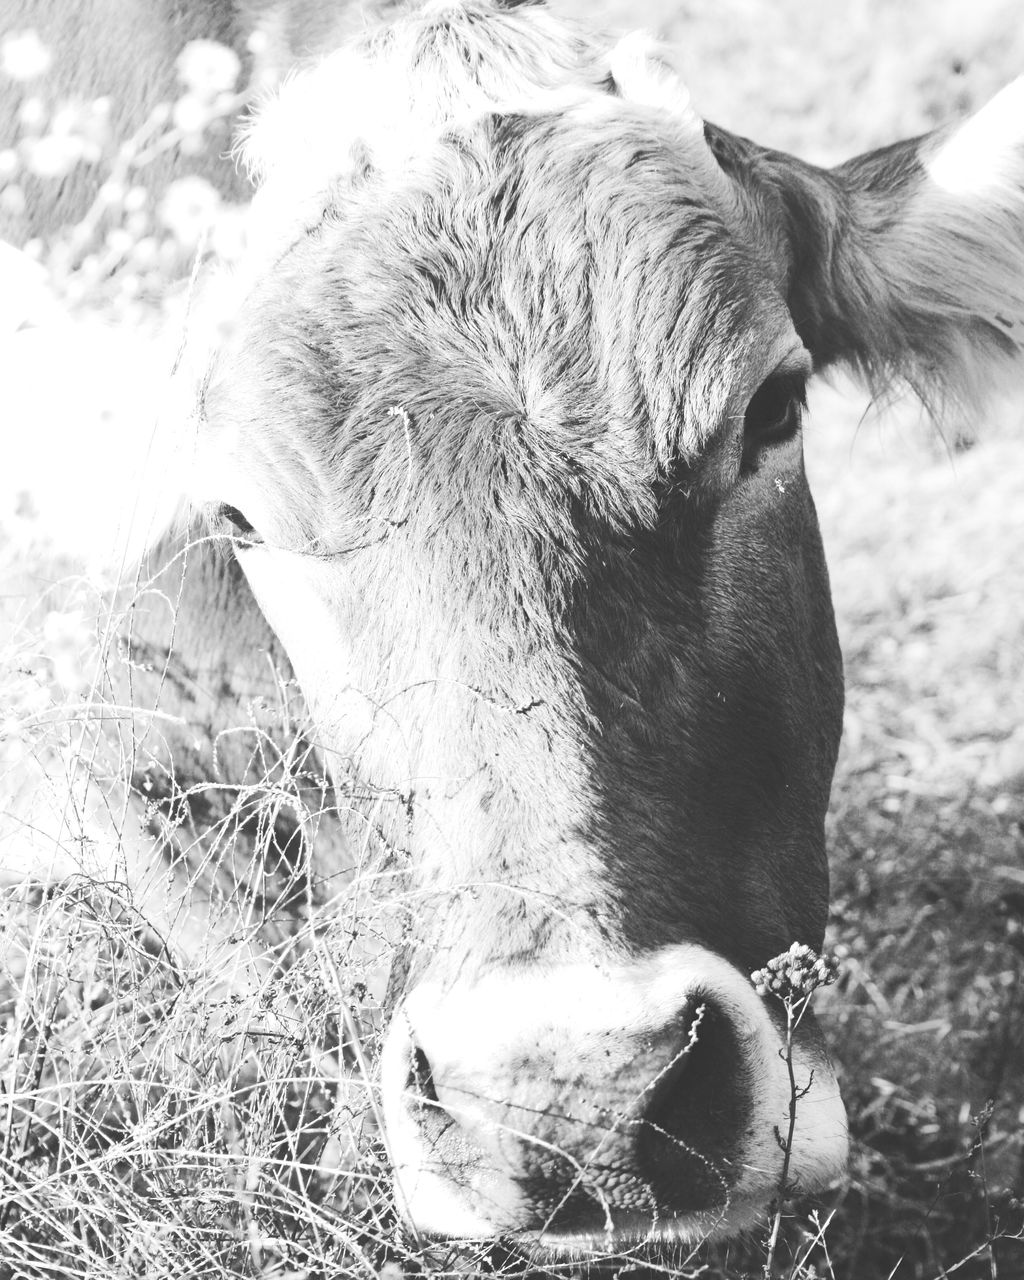 domestic animals, domestic, mammal, animal themes, one animal, pets, animal, livestock, vertebrate, cattle, animal body part, close-up, animal head, field, land, no people, day, nature, cow, domestic cattle, outdoors, herbivorous, animal mouth